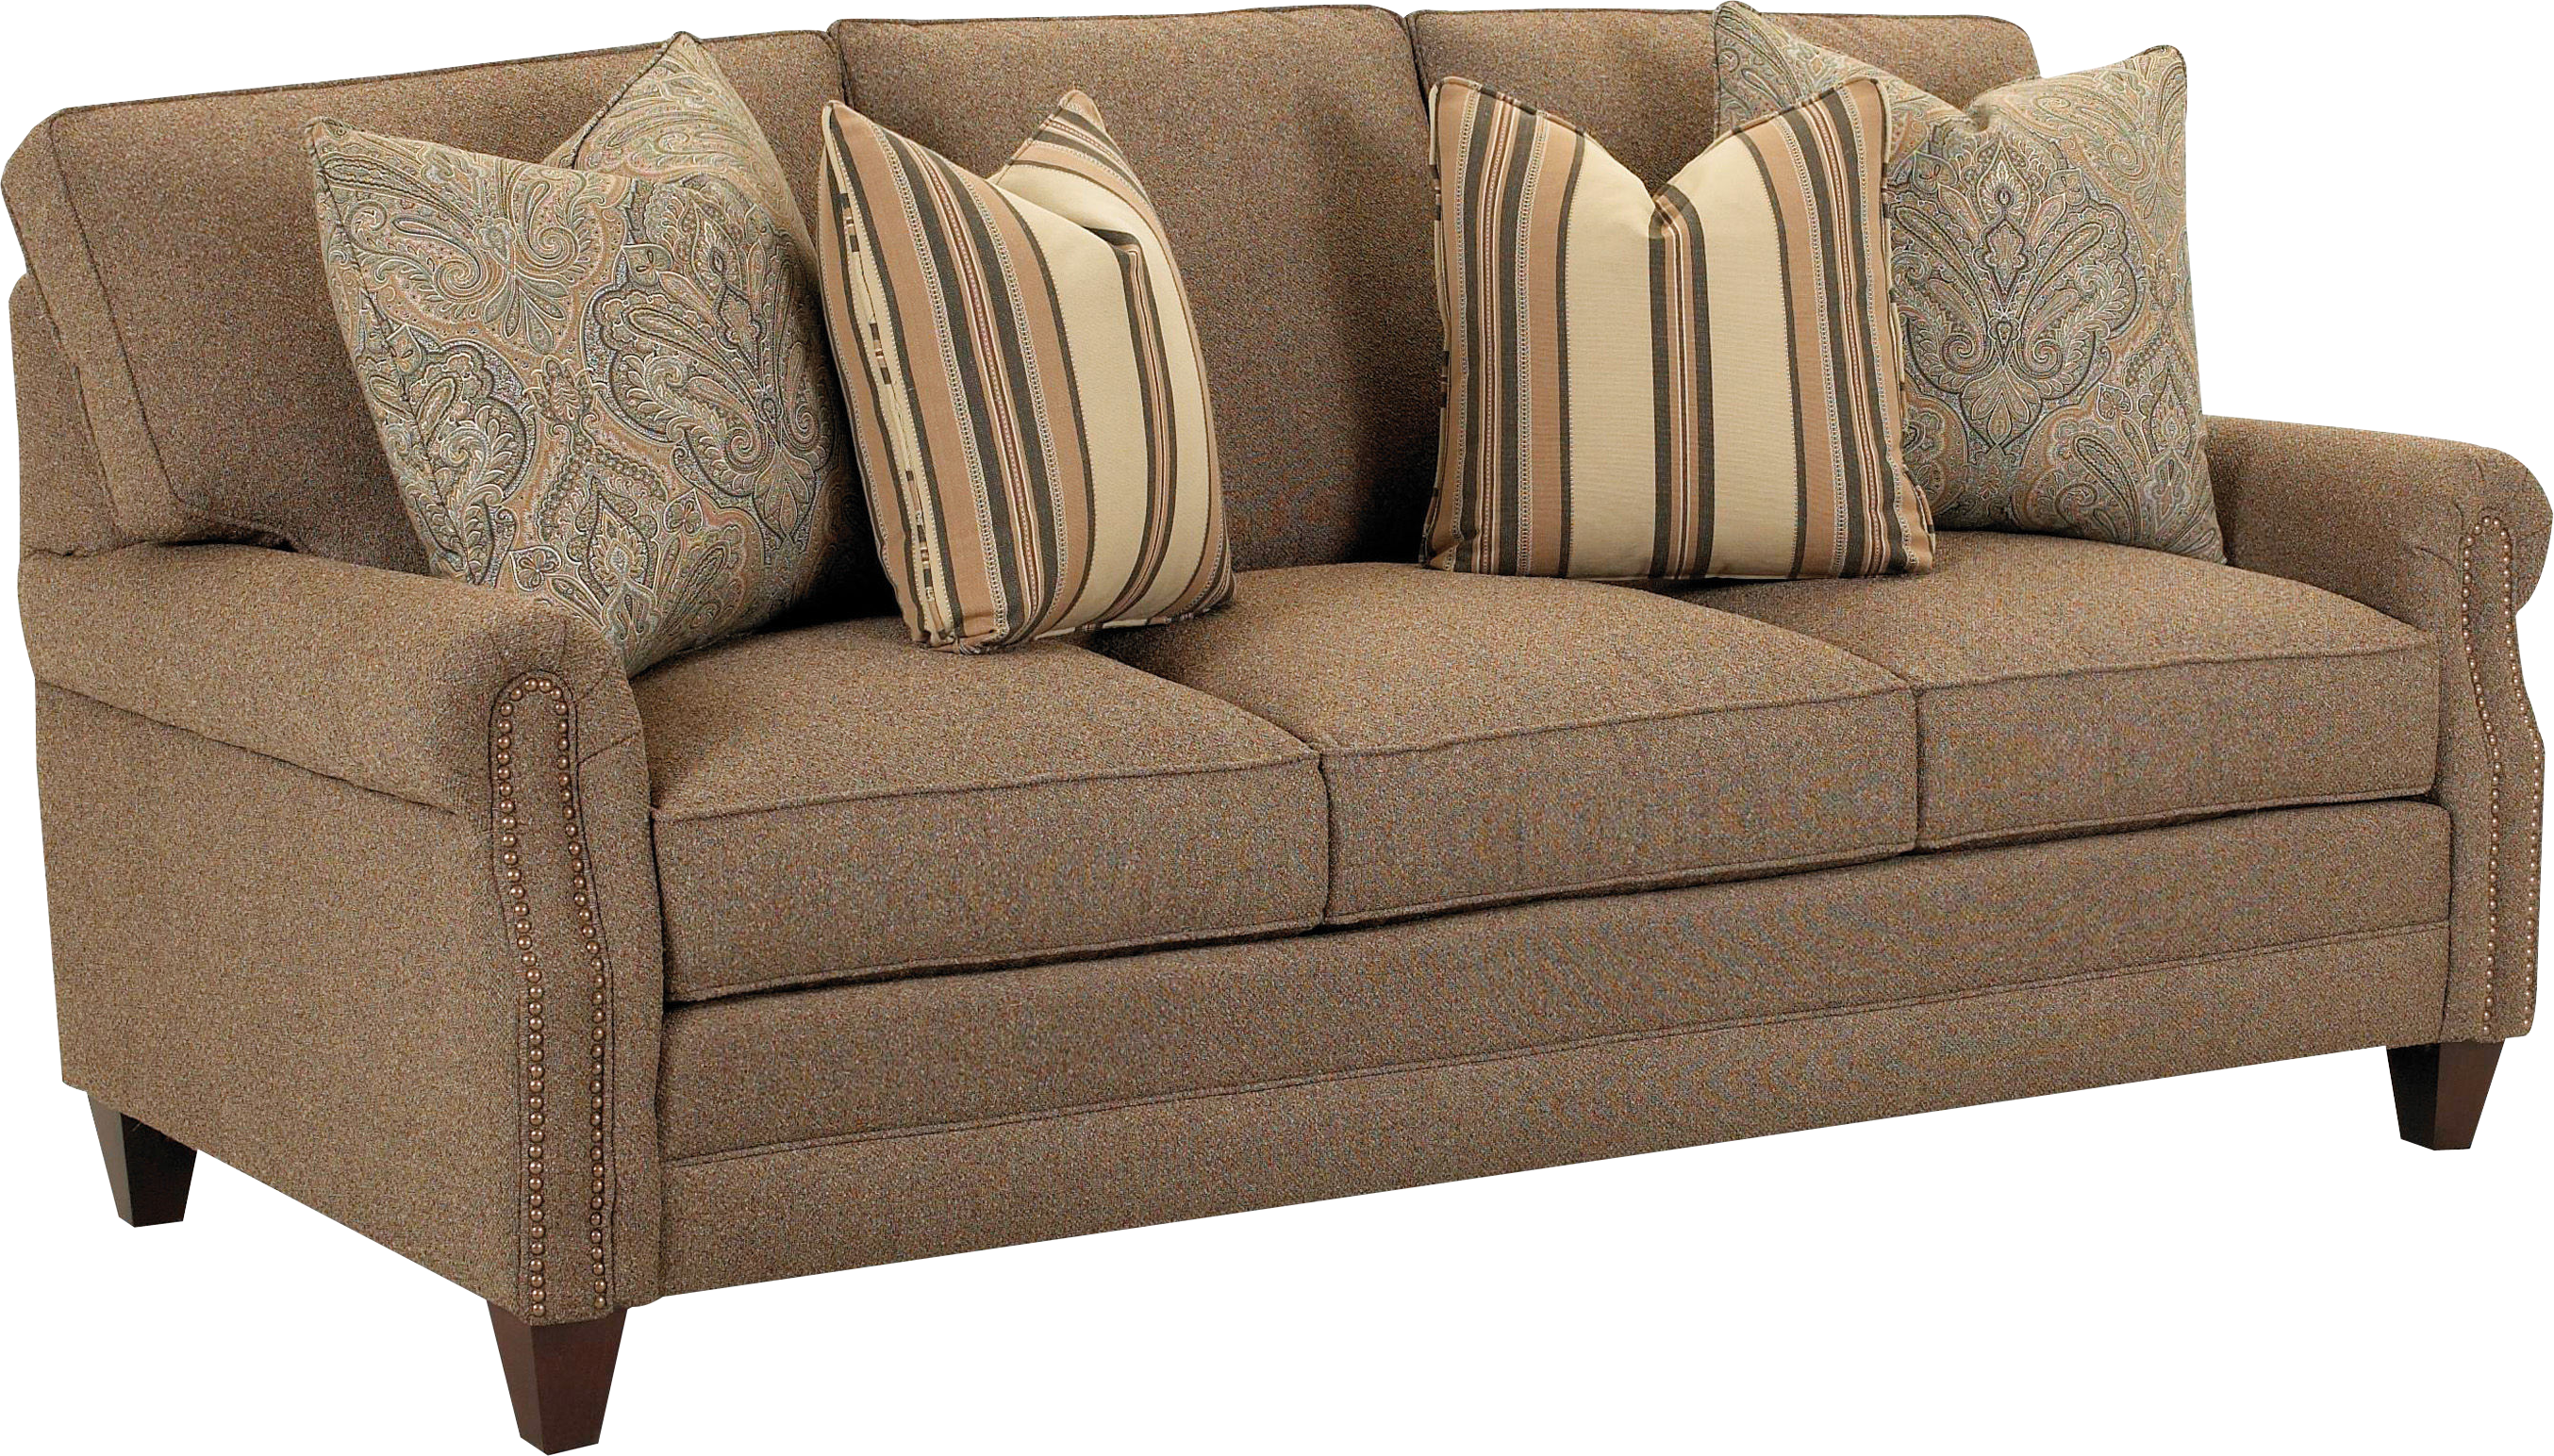 Couch transparent png. Sofa hd furniture